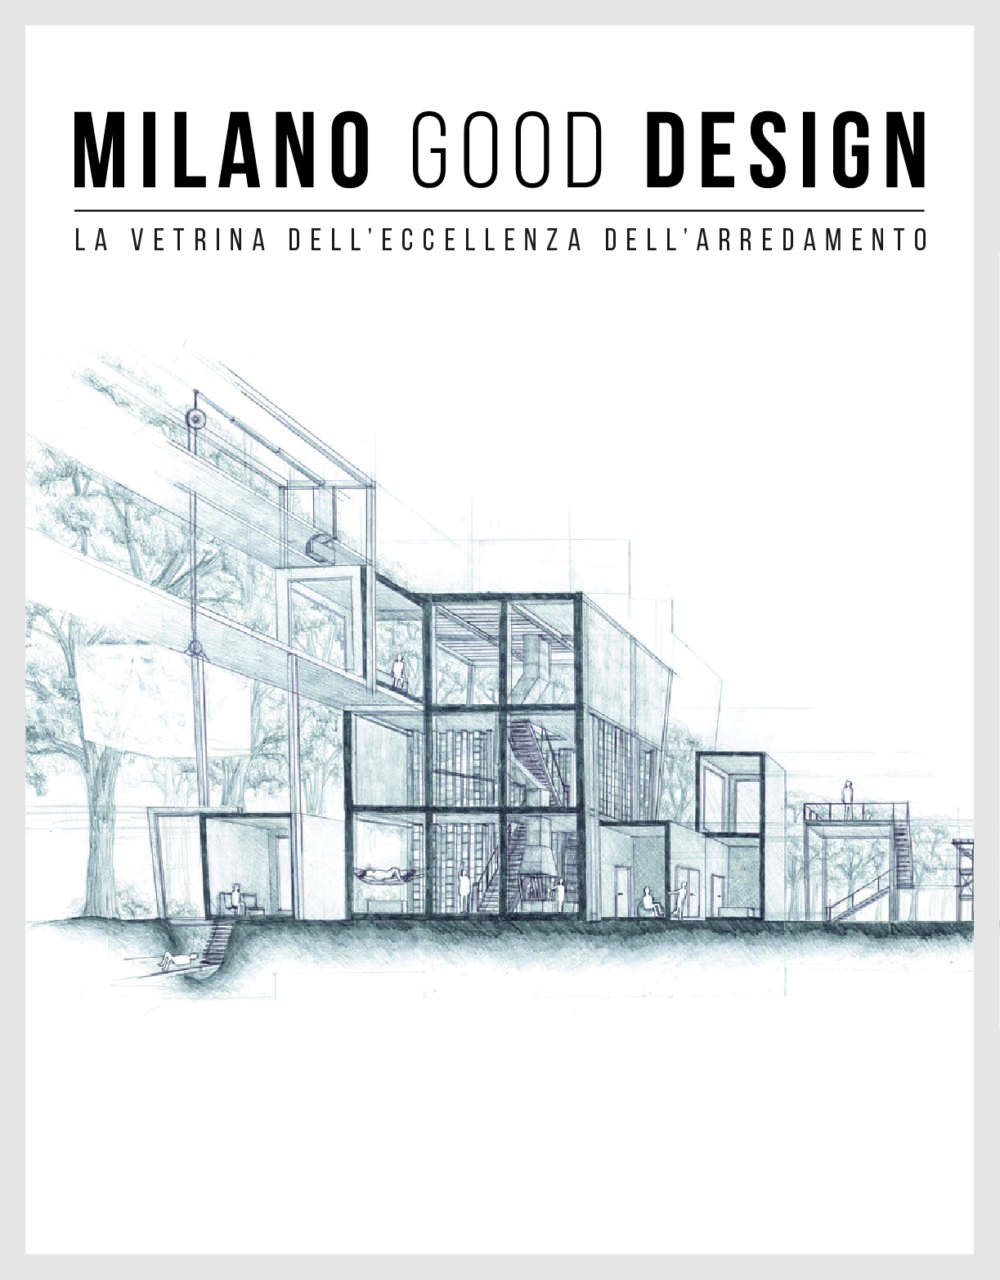 Milano Good Design